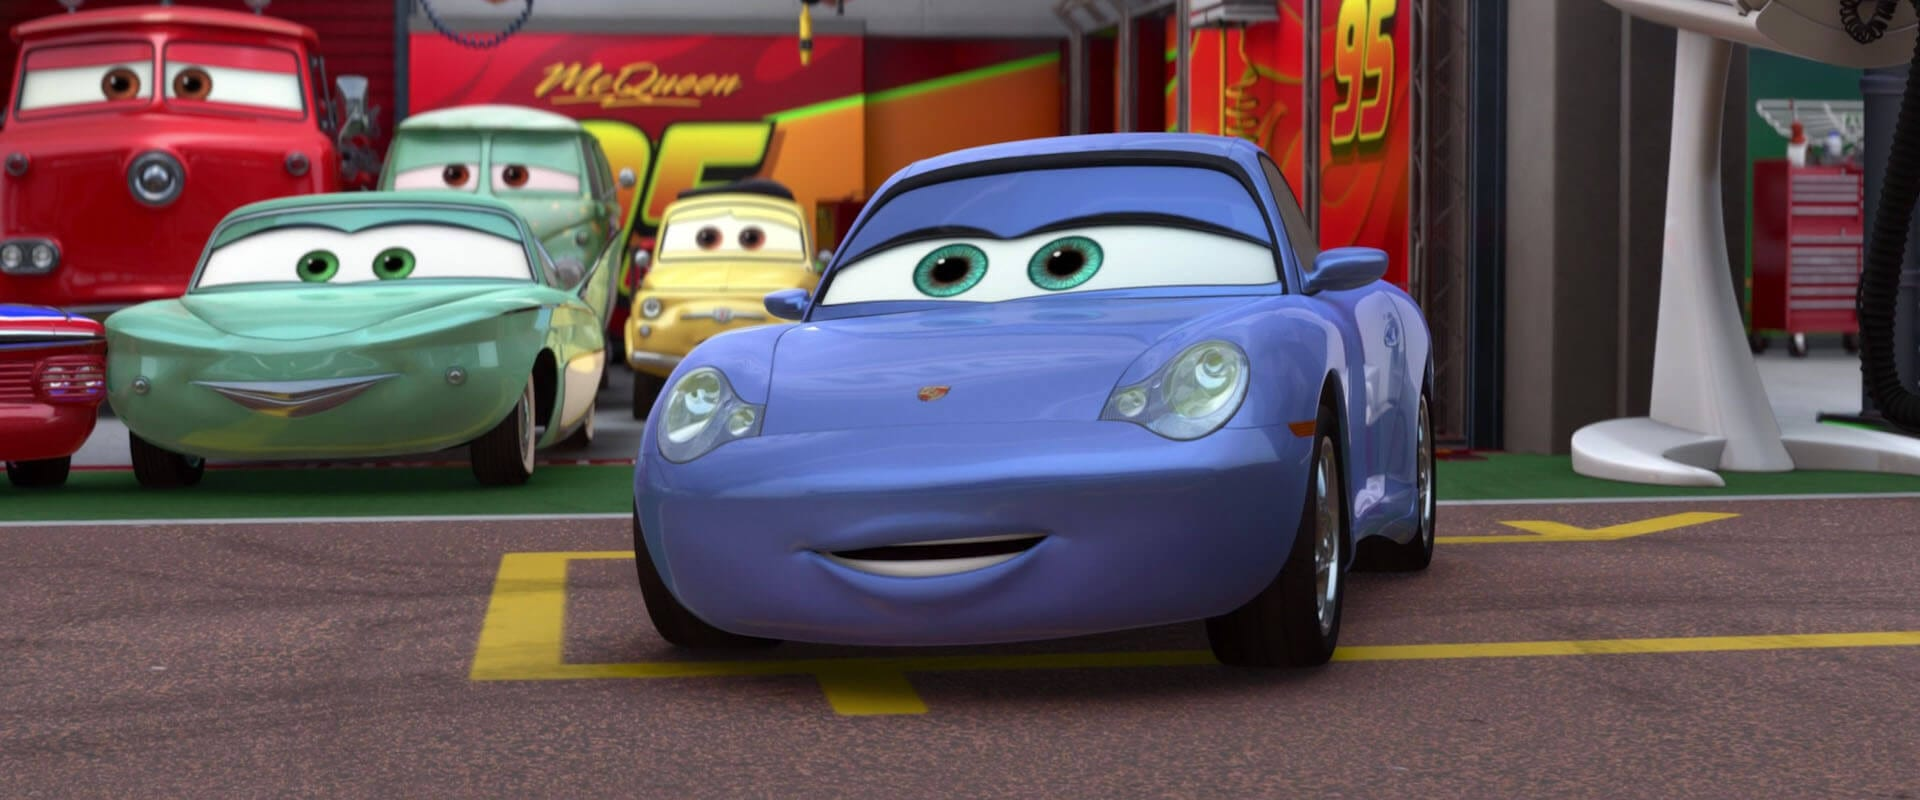 Sally Carrera Personnage Cars 2 01 Geeks Gamers